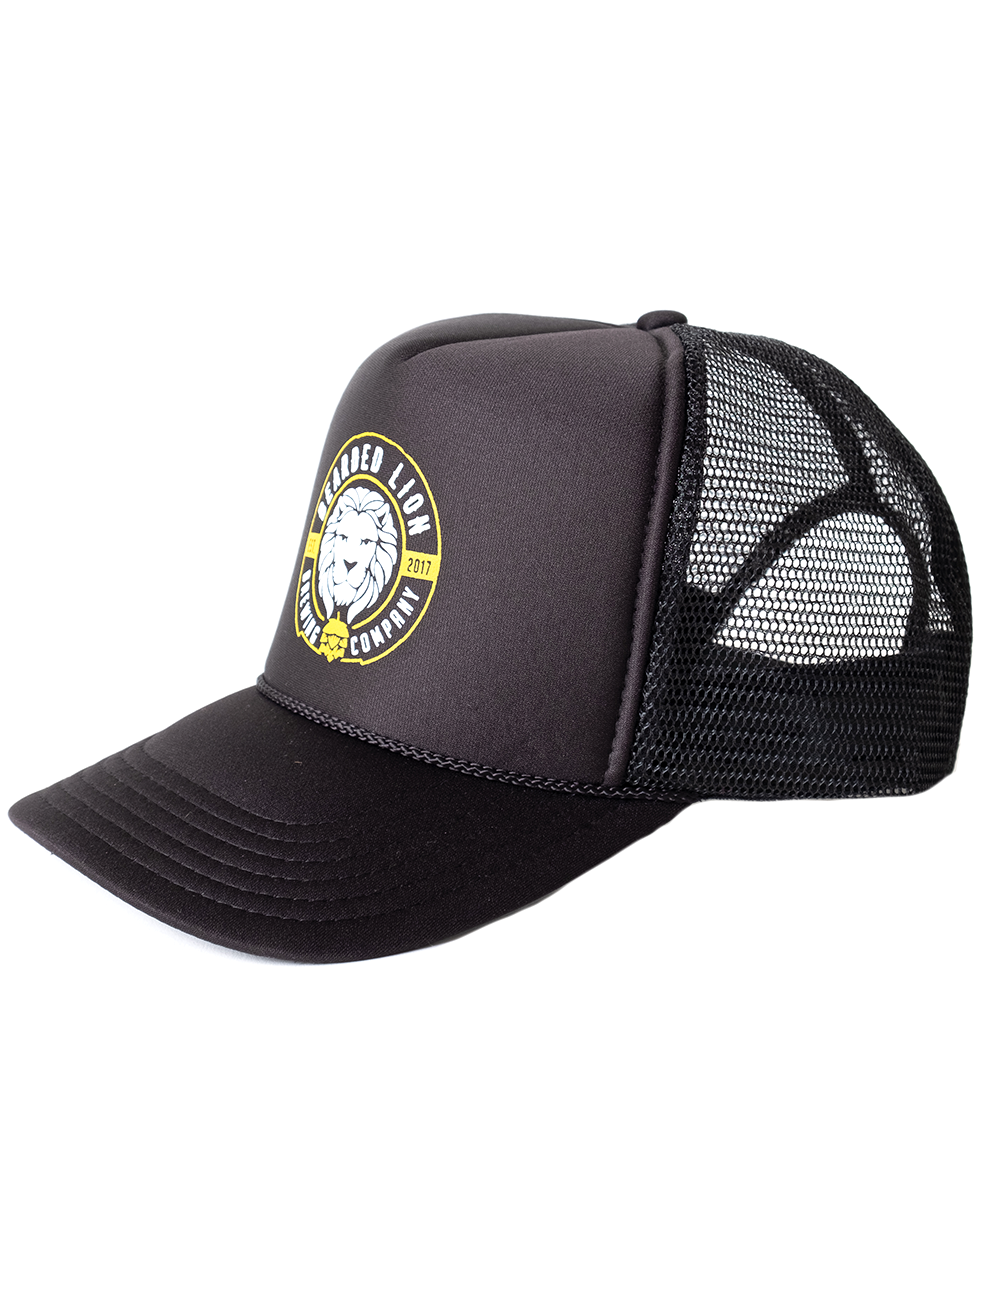 Art and ink bearded lion branded cap